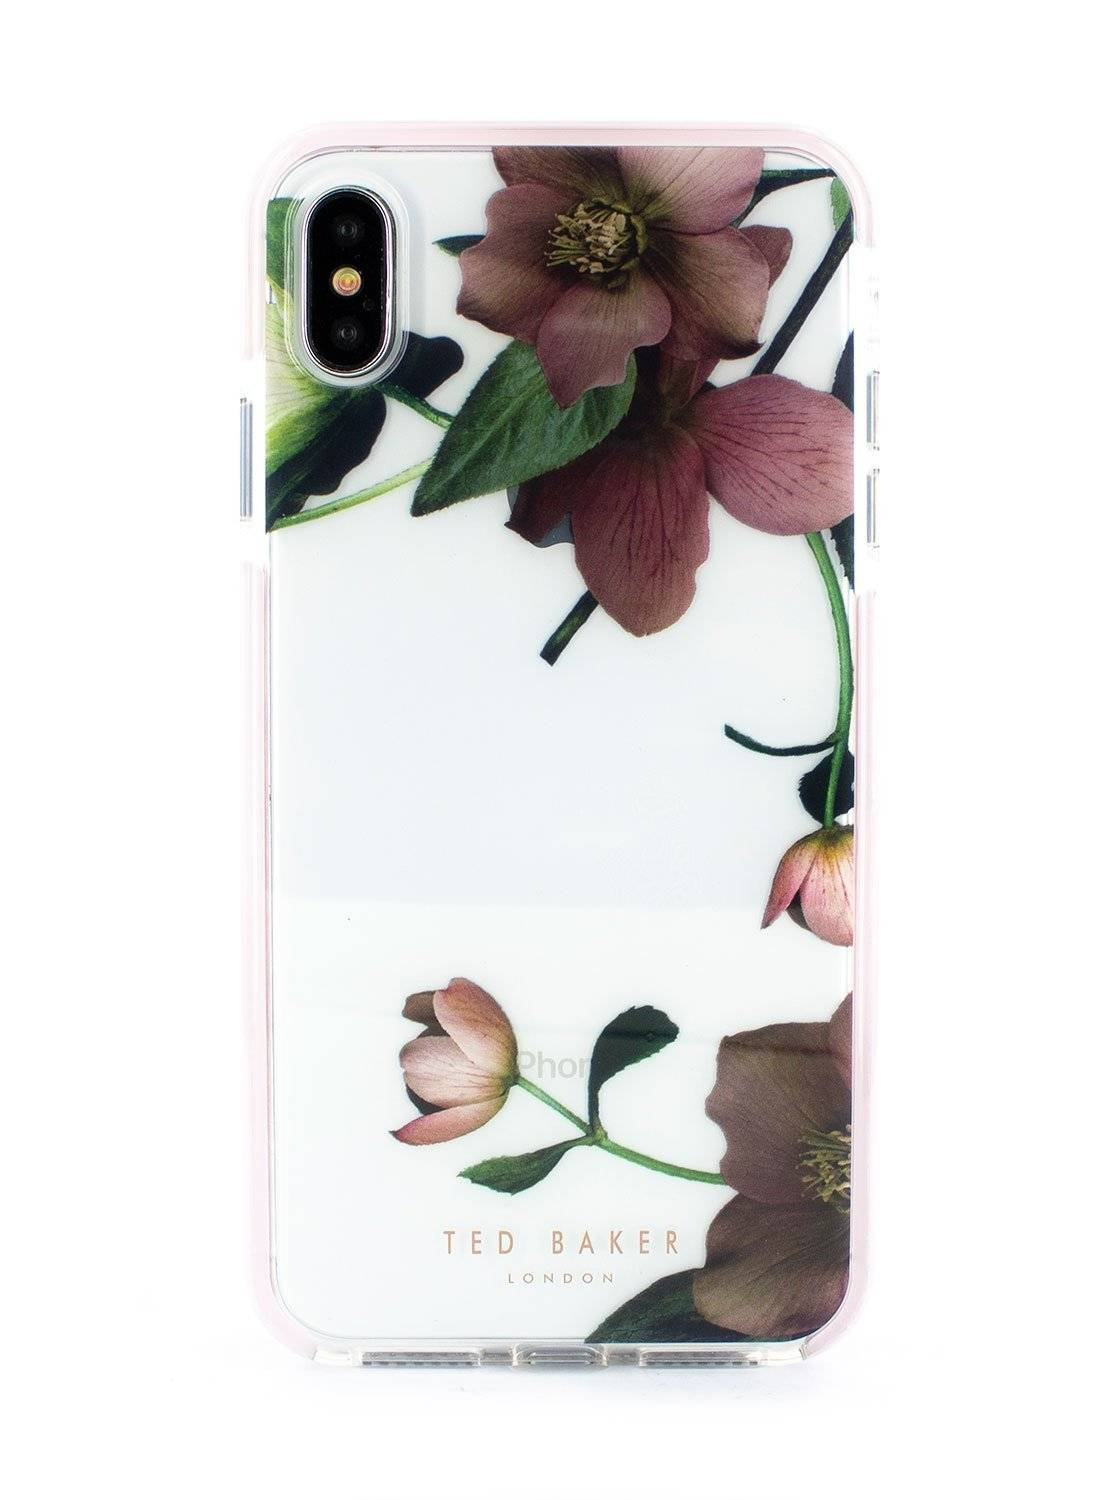 Ted Baker ARBORETUM Anti Shock Case for iPhone XS Max - Clear Back